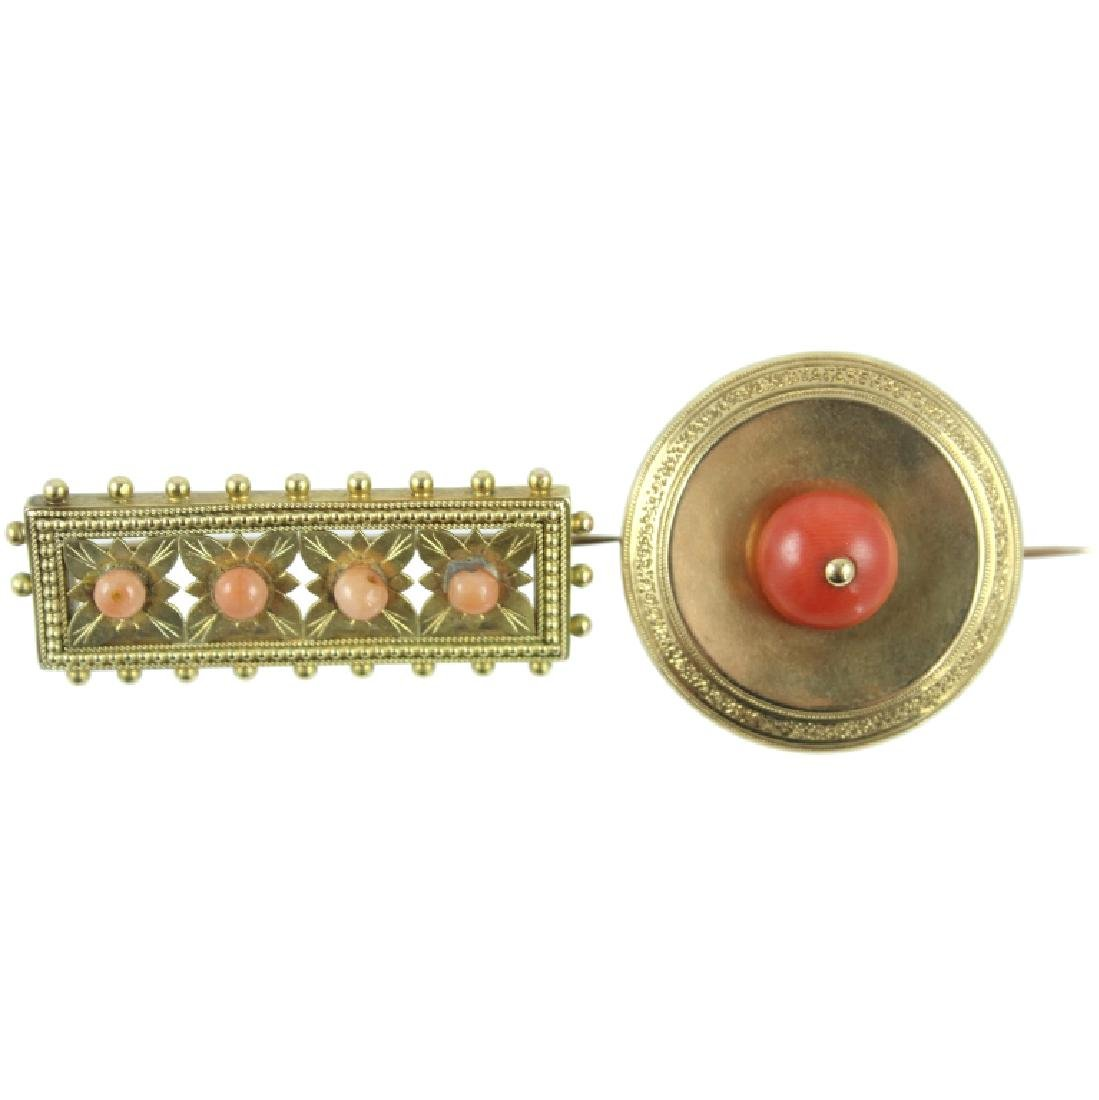 (2) TWO VICTORIAN CORAL PENDANT BROOCH